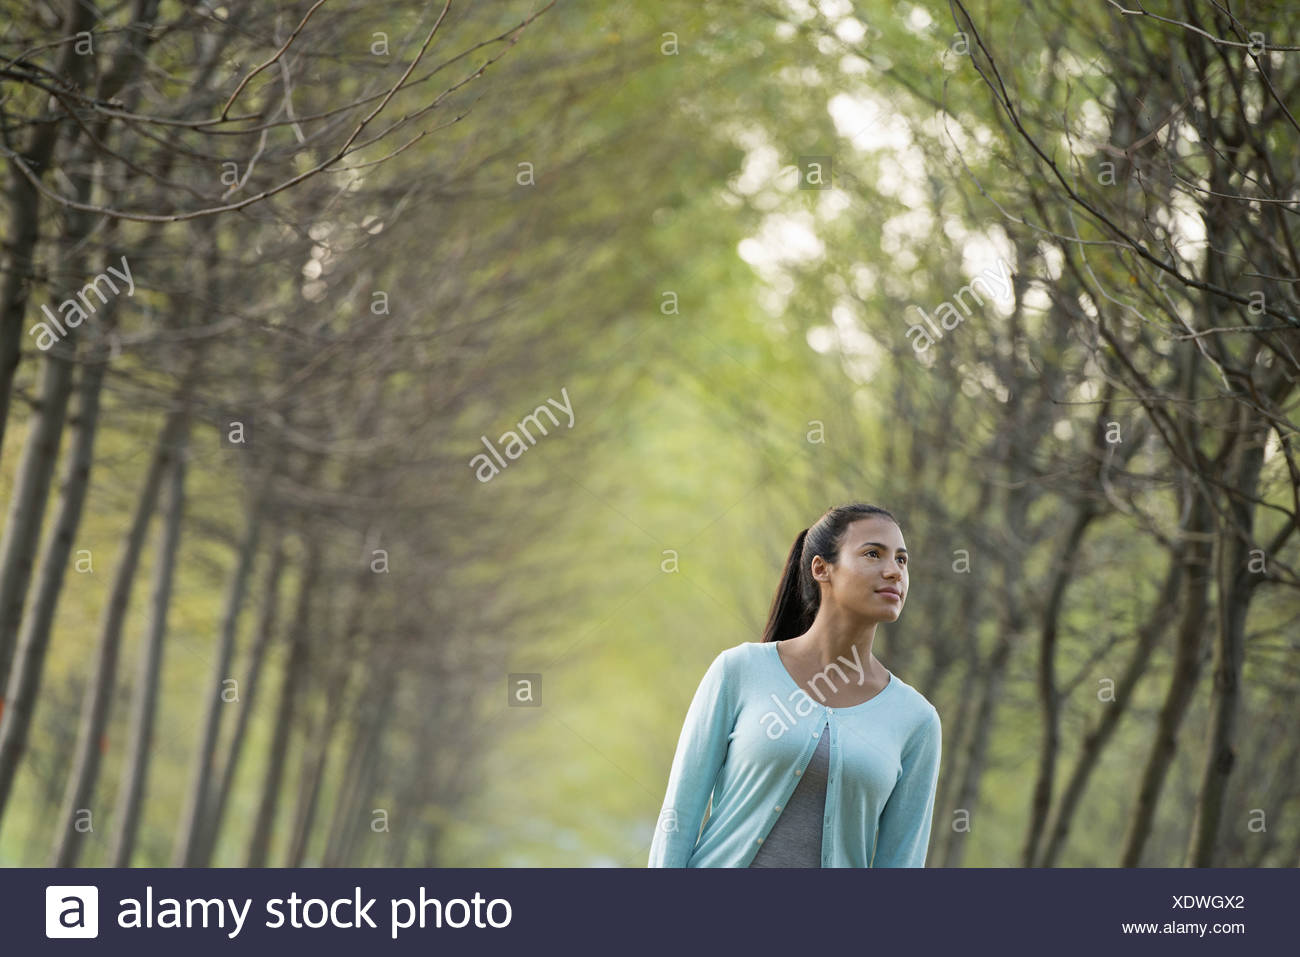 A woman between two rows trees looking upwards. - Stock Image